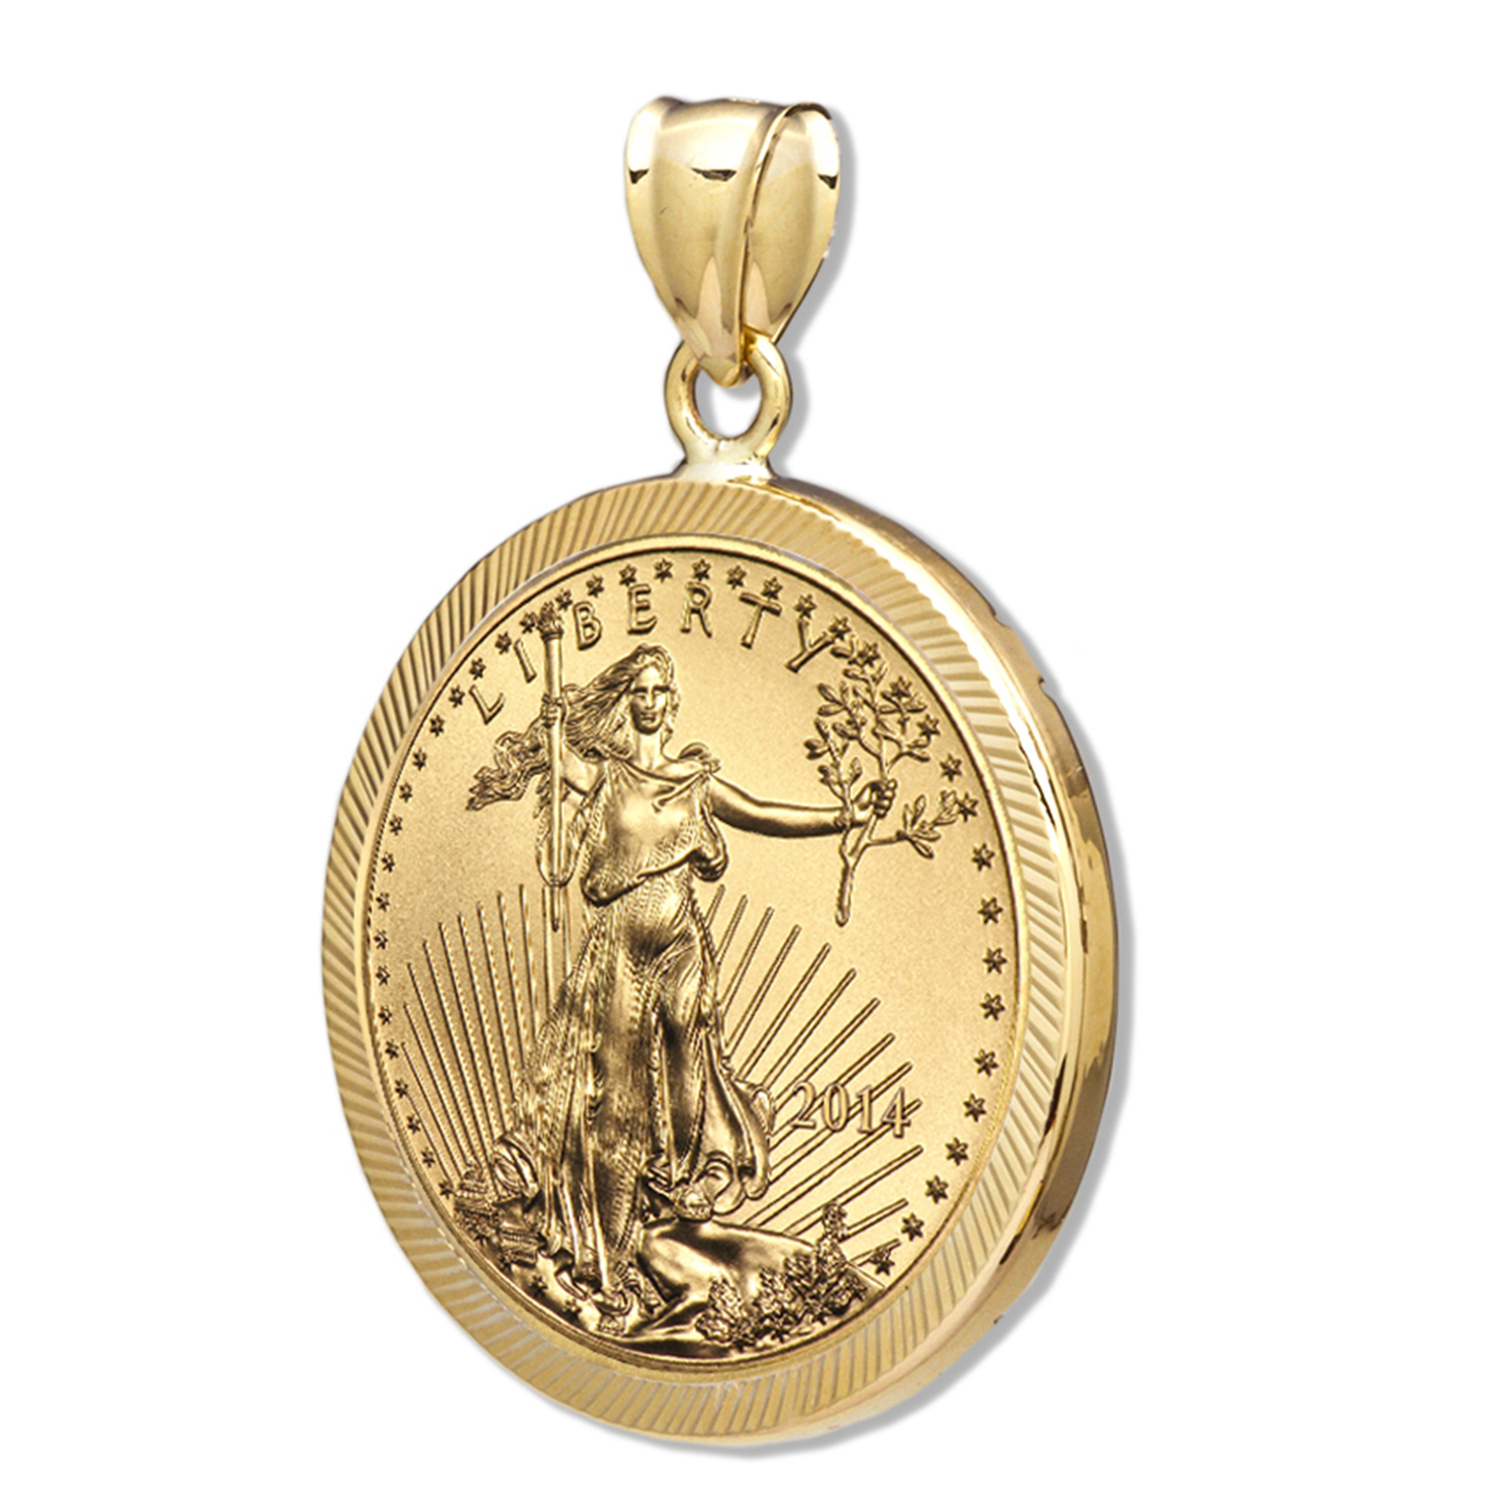 2014 1/2 oz Gold Eagle Pendant (Diamond-Prong Bezel)